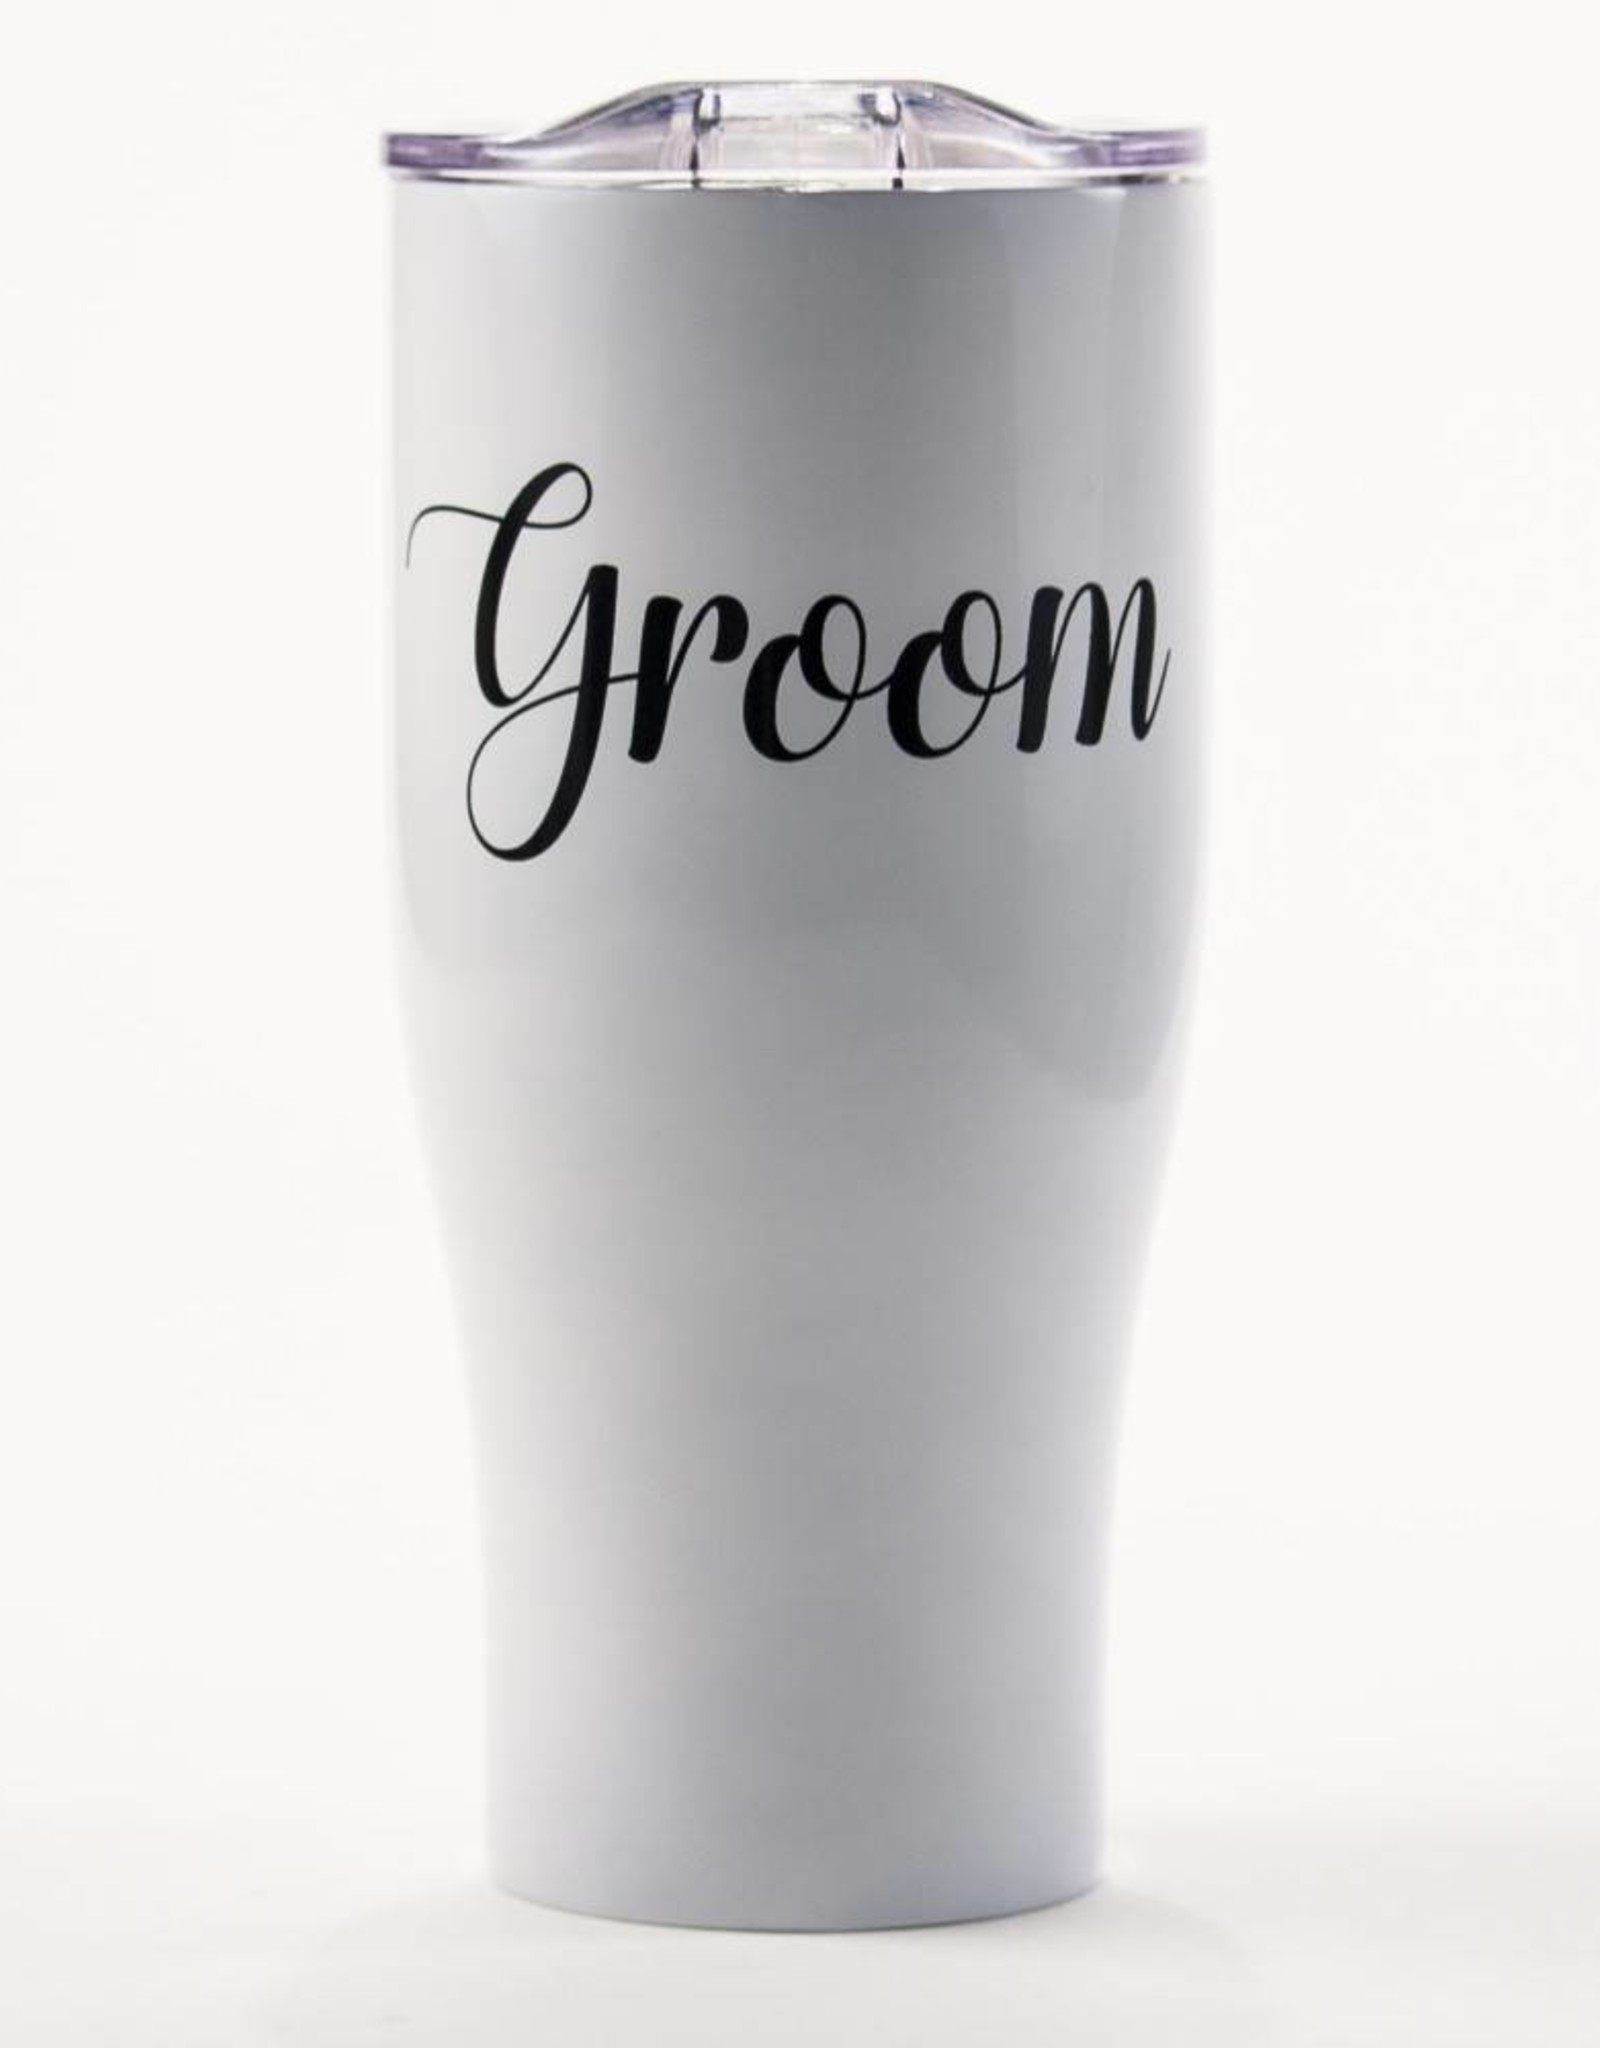 The Royal Standard Groom Insulated Refresh Tumbler